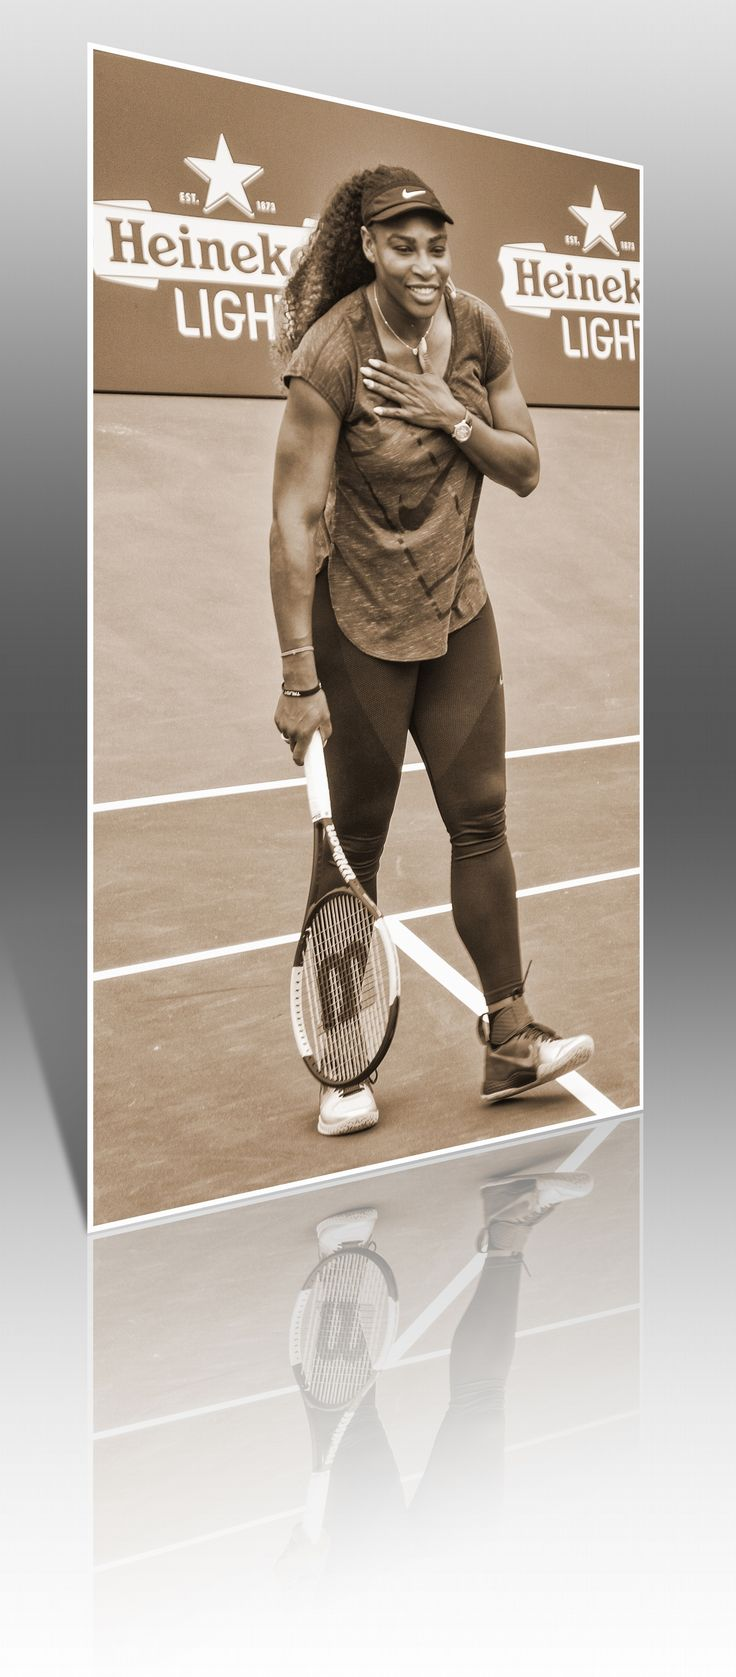 Serena and Venus Williams vs All Black Savea brothers today in Auckland. ... 19  PHOTOS        ... At the first day of year 2017 in Auckland tennis superstars Serena and Venus Williams will met All Black brothers Julian and Ardie Savea at a charity match-up.        Posted from:          http://softfern.com/NewsDtls.aspx?id=1119&catgry=1            SoftFern News, Venus Williams, Serena Williams, sisters Williams vs All Black Savea brothers, Serena and Venus Williams, All Black Savea brothers…